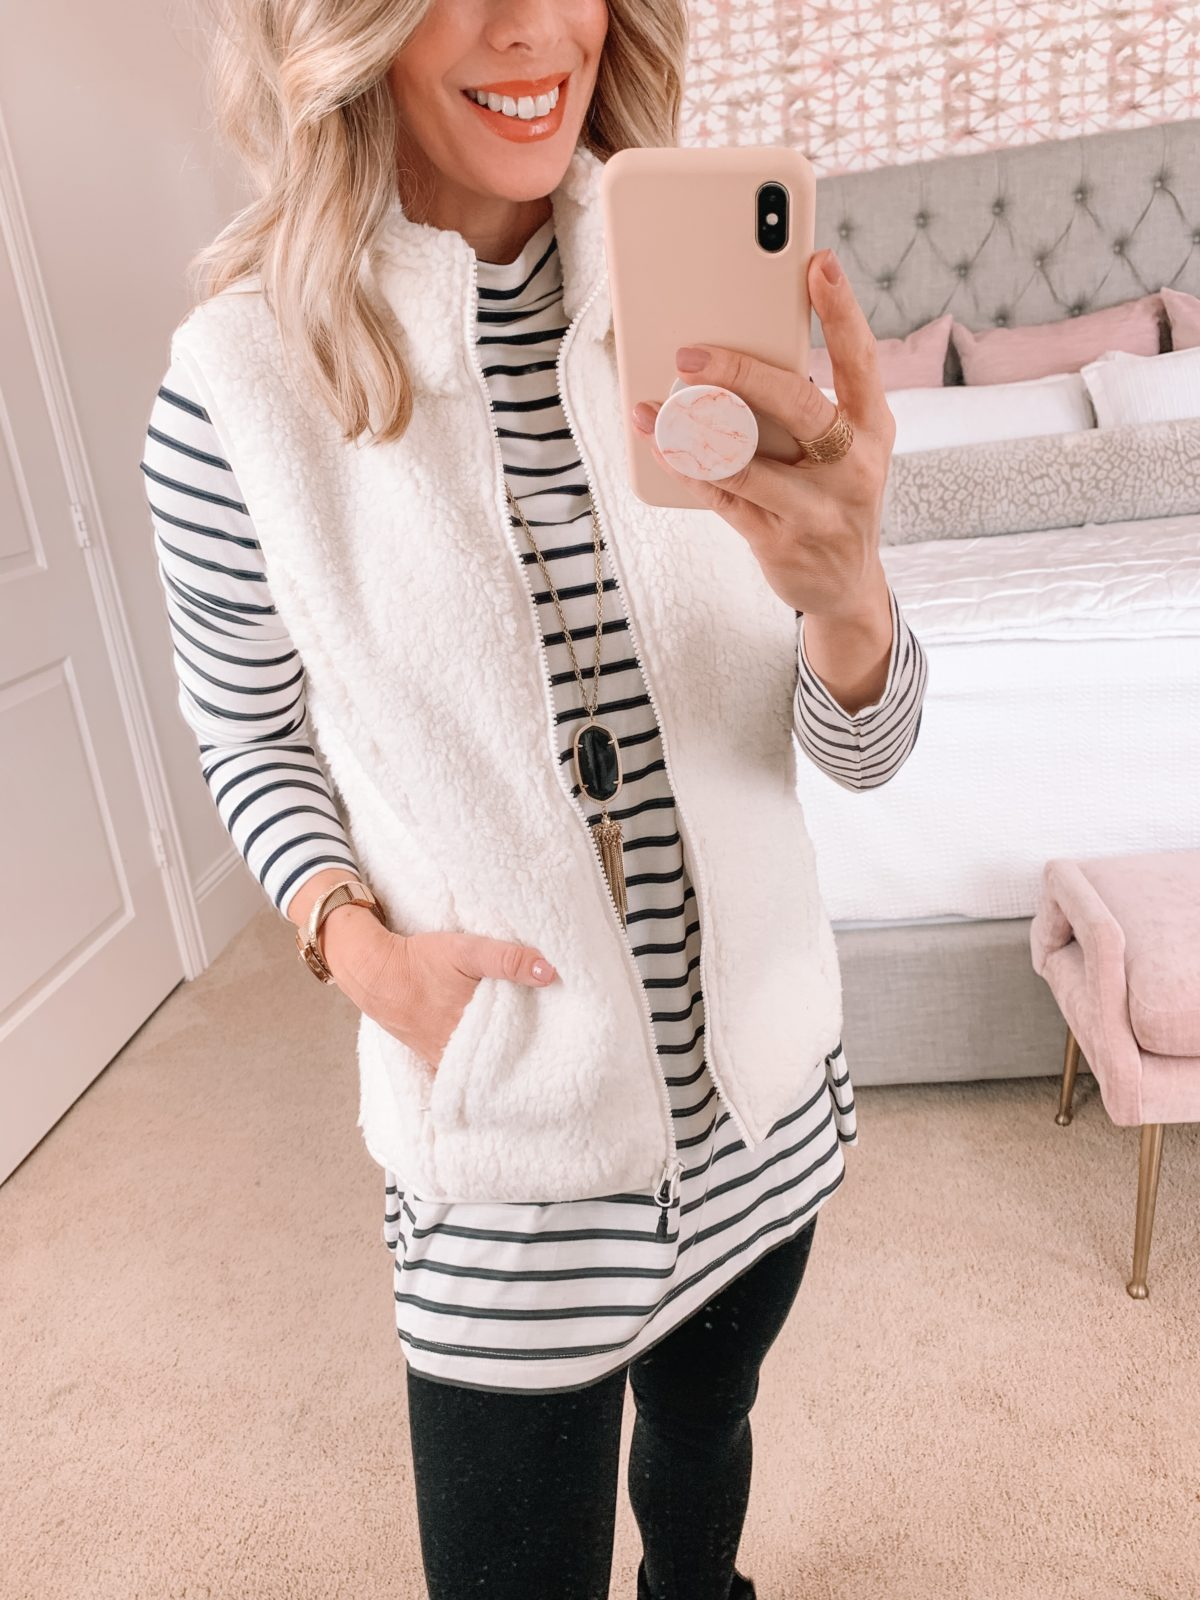 Amazon Fashion Faves, Striped Top, Fleece Vest, Ponte Leggings, Ugg Booties